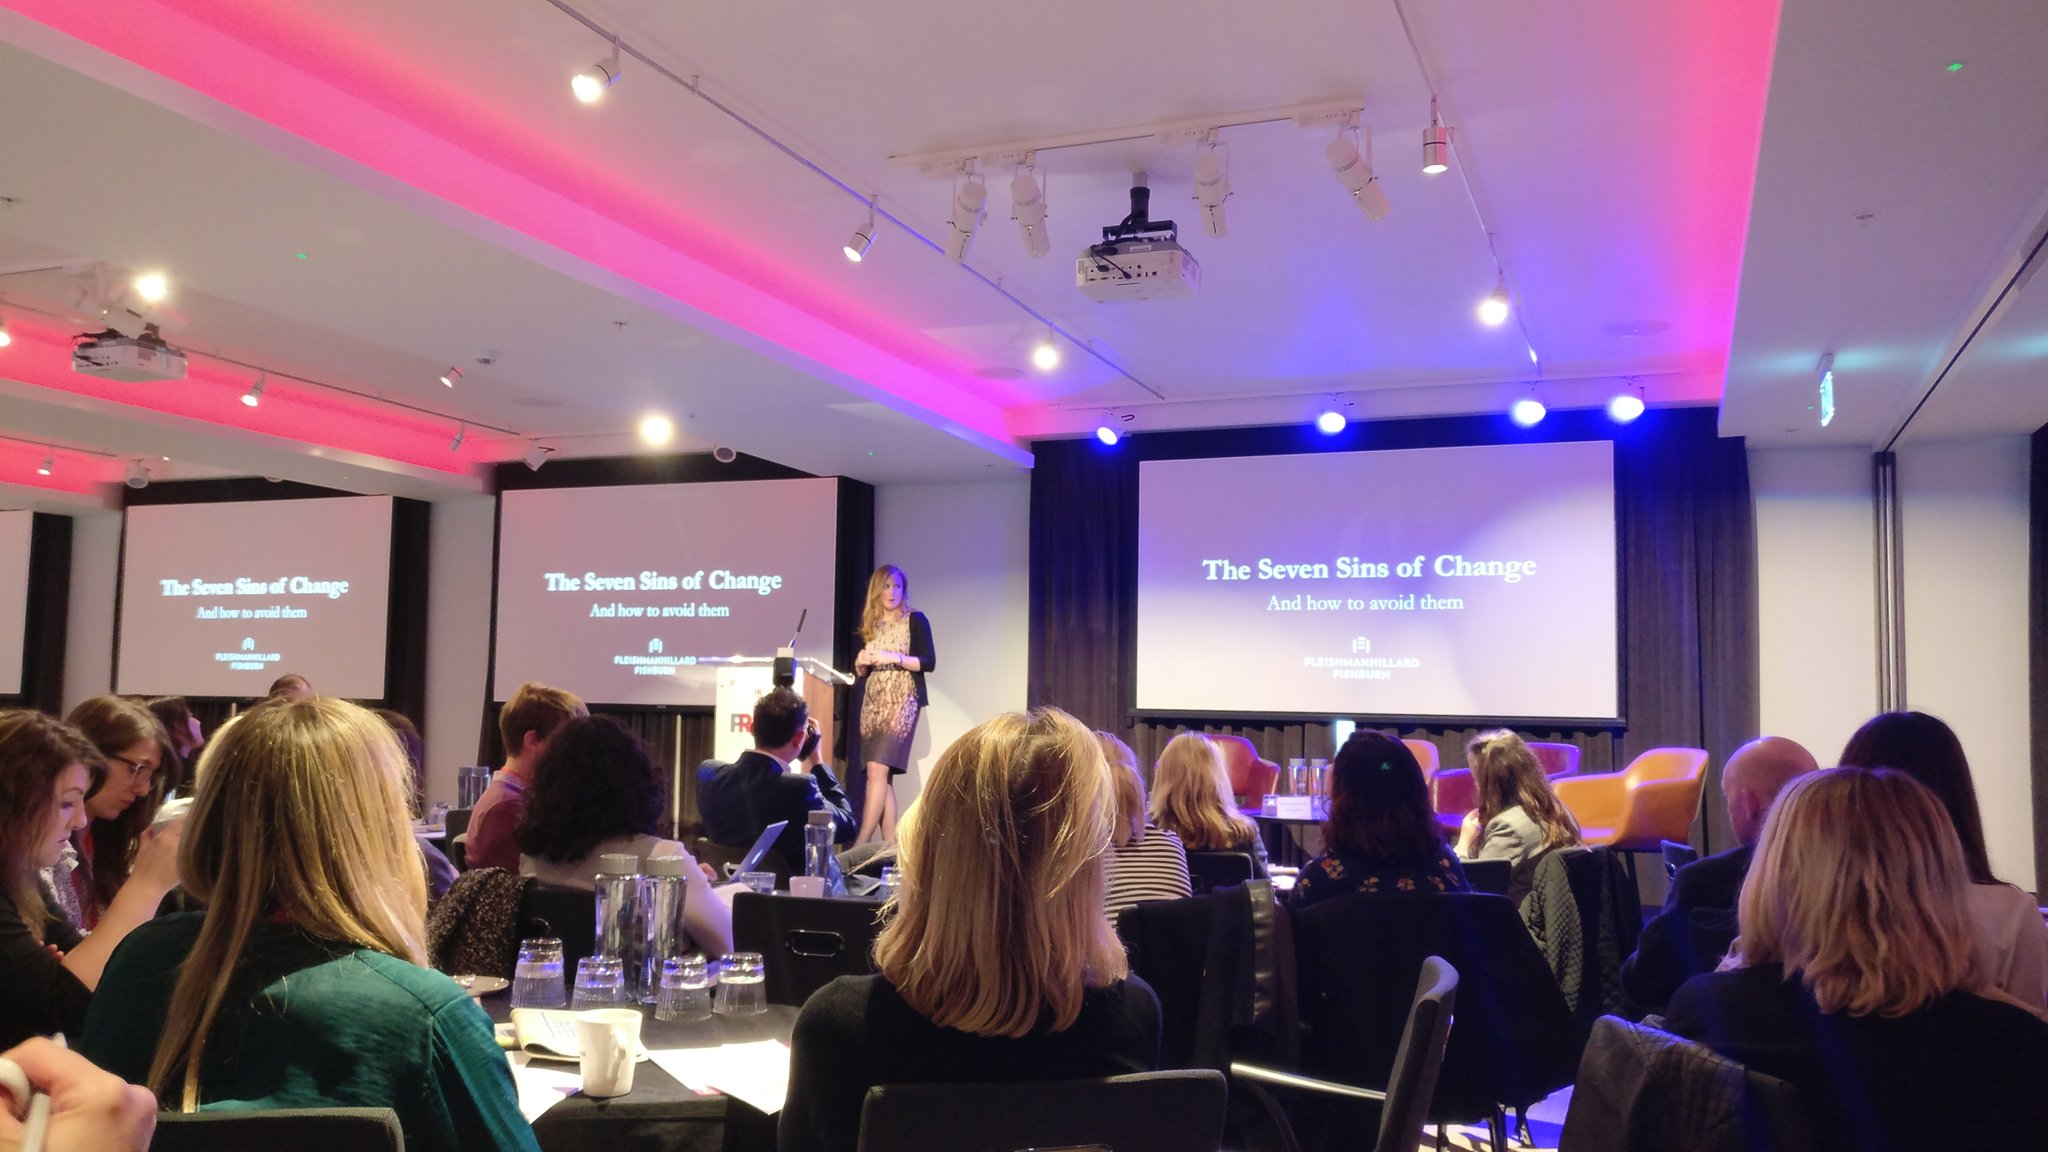 RT @FHFLondon: Ali Gee now taking the stage for a keynote session at #PR360 https://t.co/ObWq8vRsCh